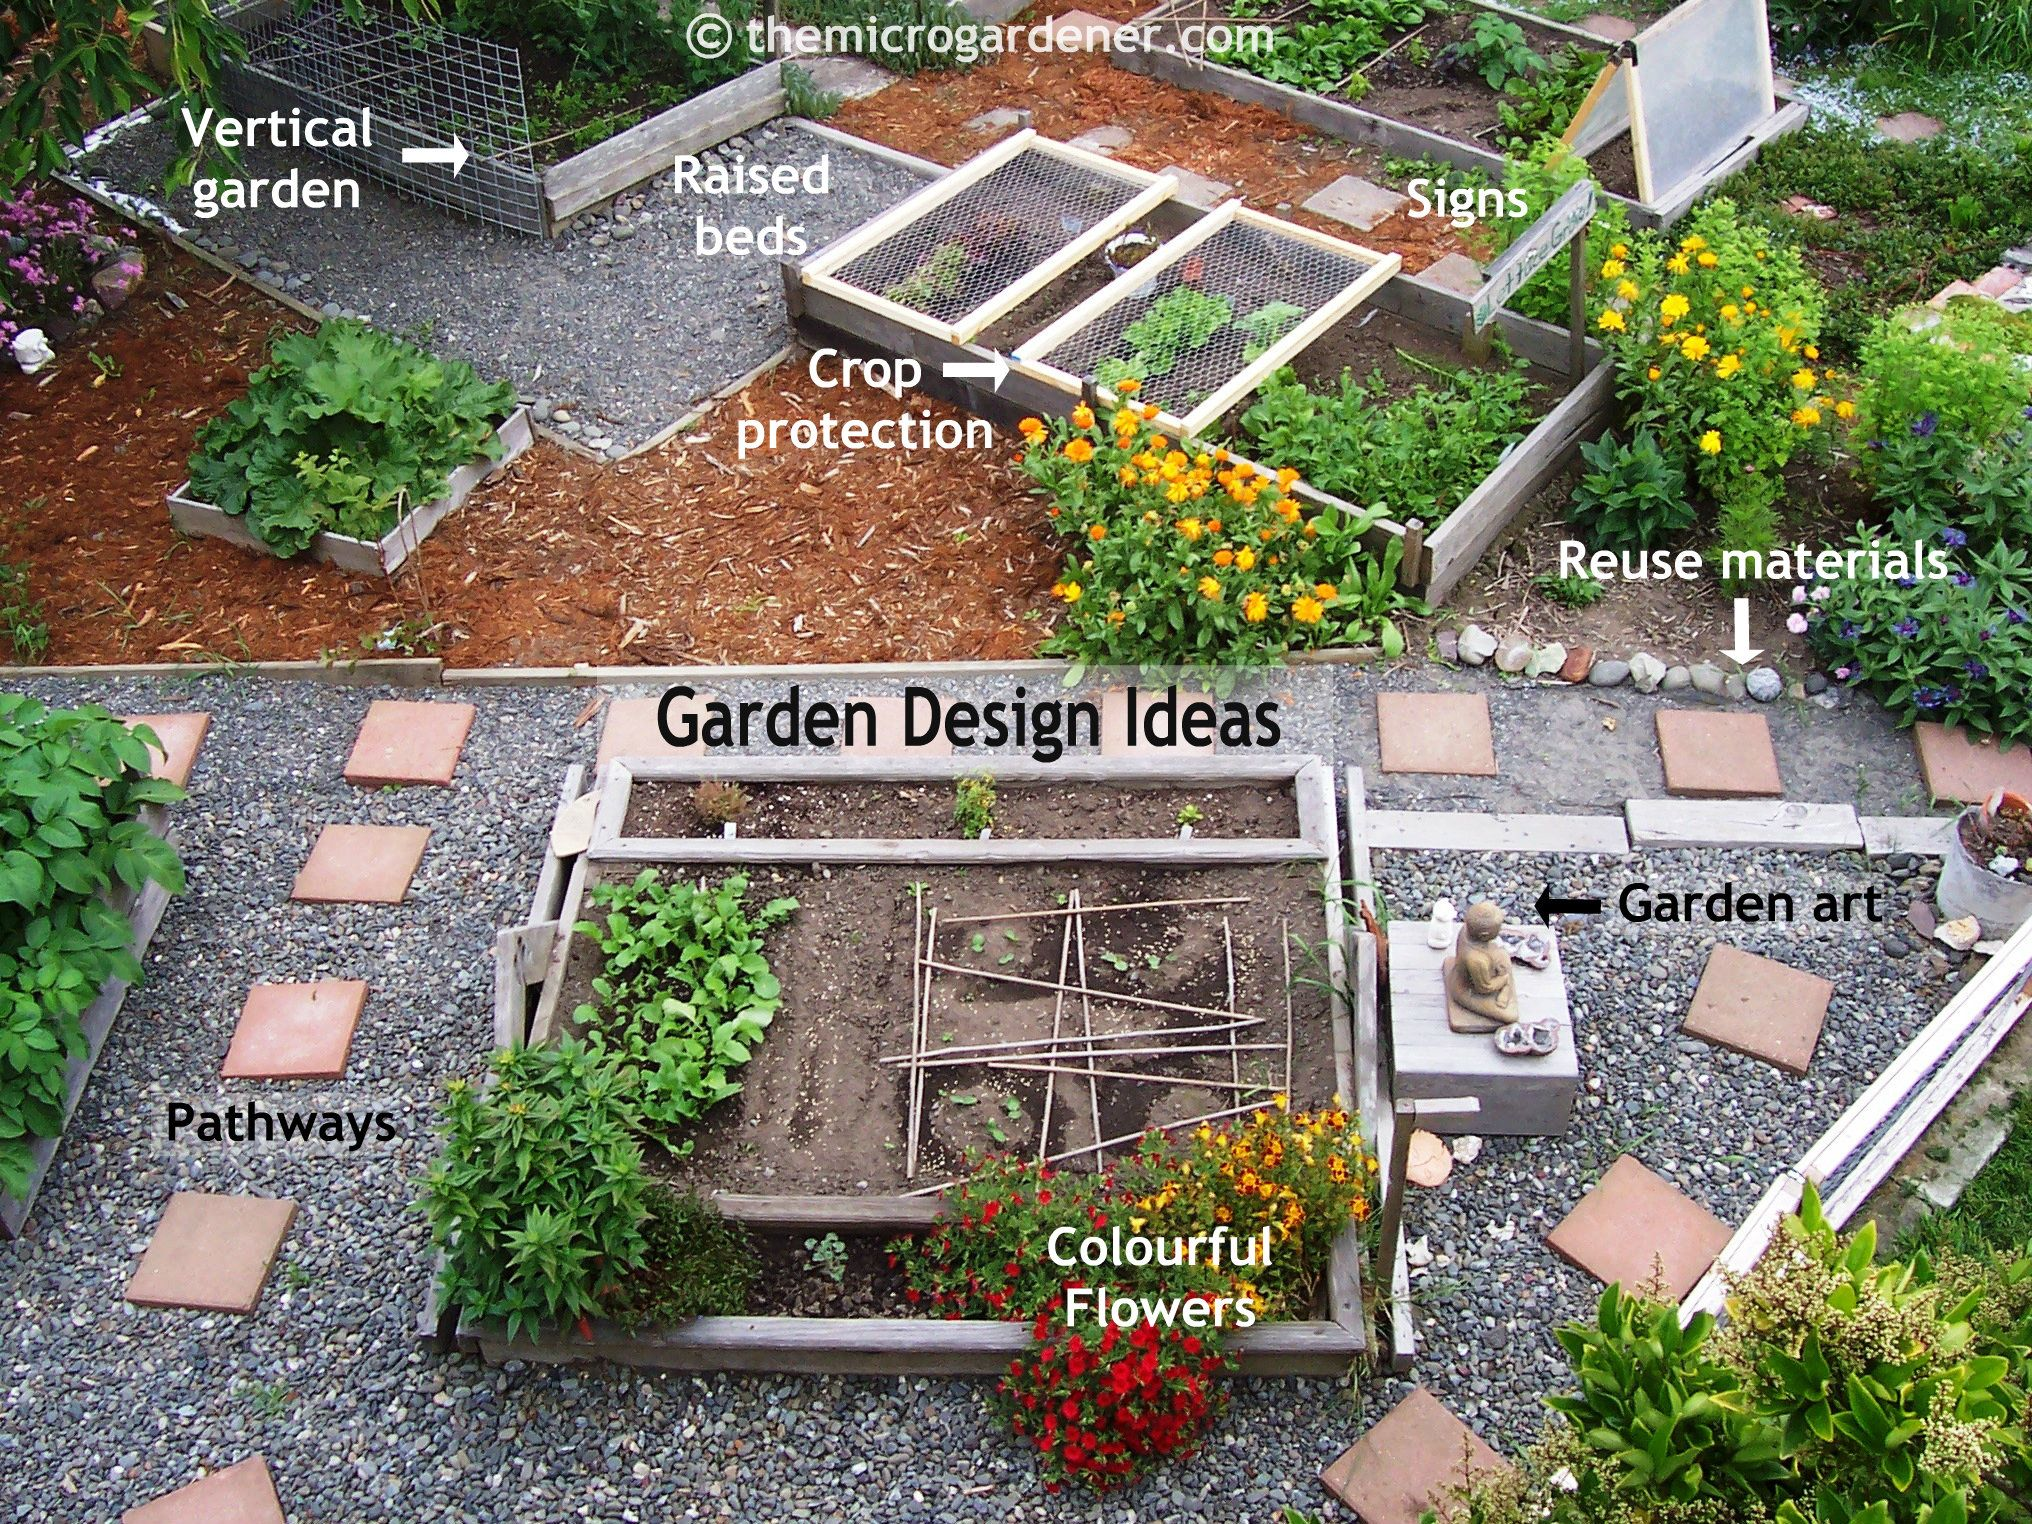 Small Gardens Ideas ad pretty small garden ideas 26 Small Garden Design Got Limited Space Or Planning A Kitchen Garden If You Want